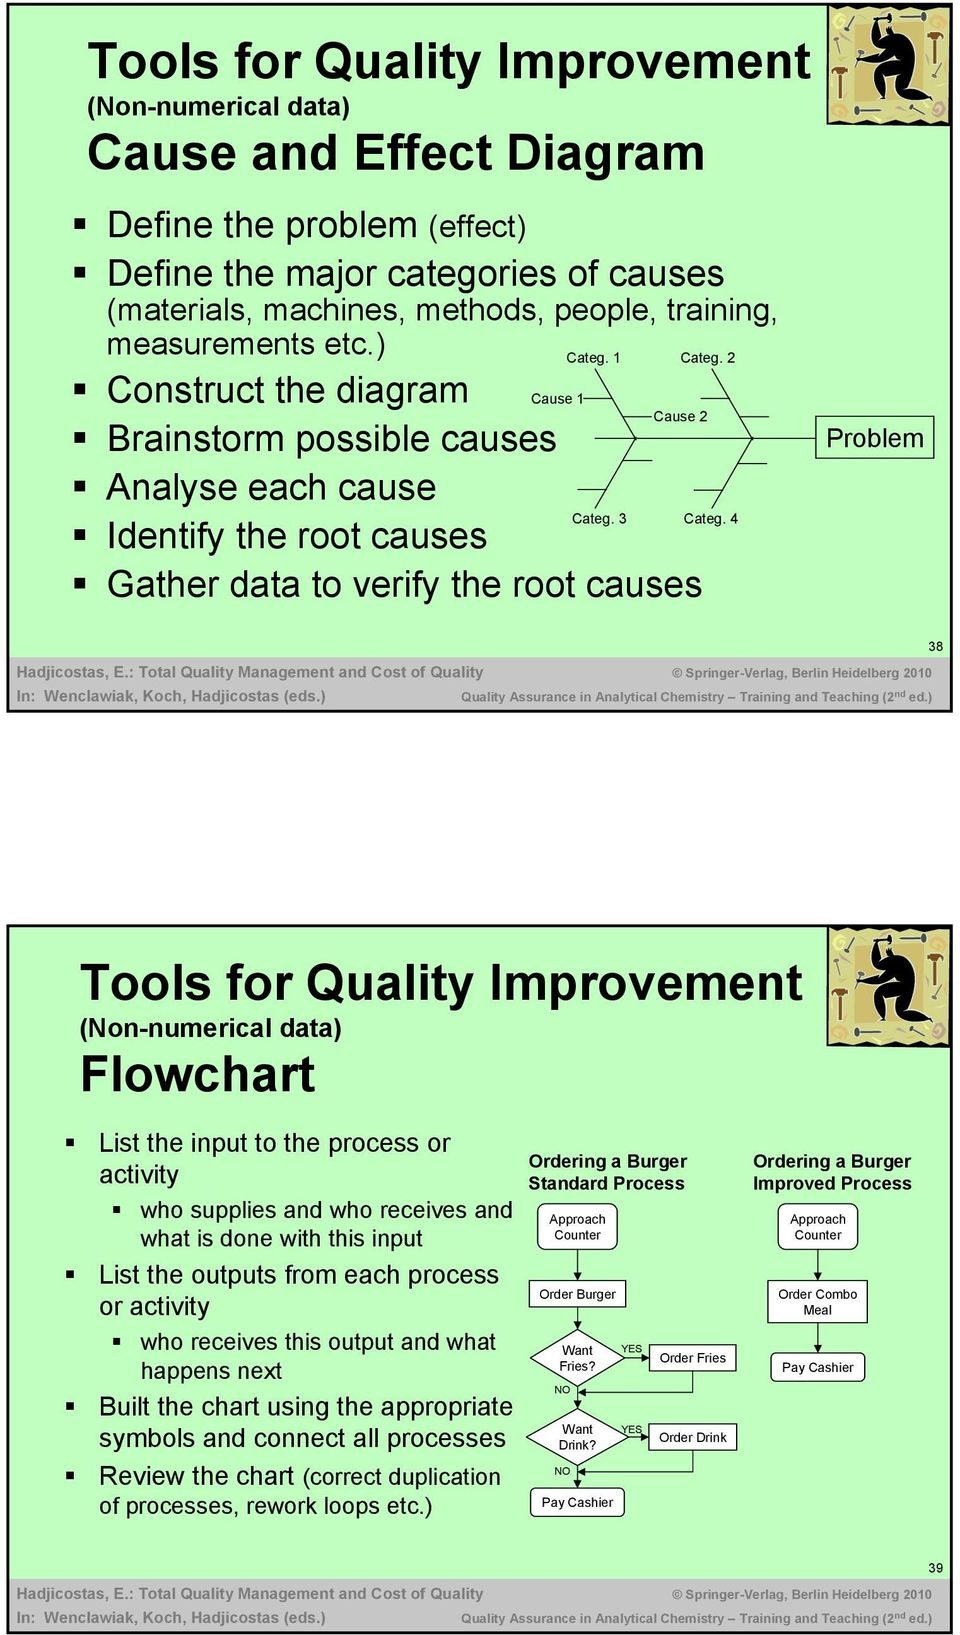 4 Identify the root causes Gather data to verify the root causes Problem 38 Tools for Quality Improvement (Non-numerical data) Flowchart List the input to the process or activity who supplies and who